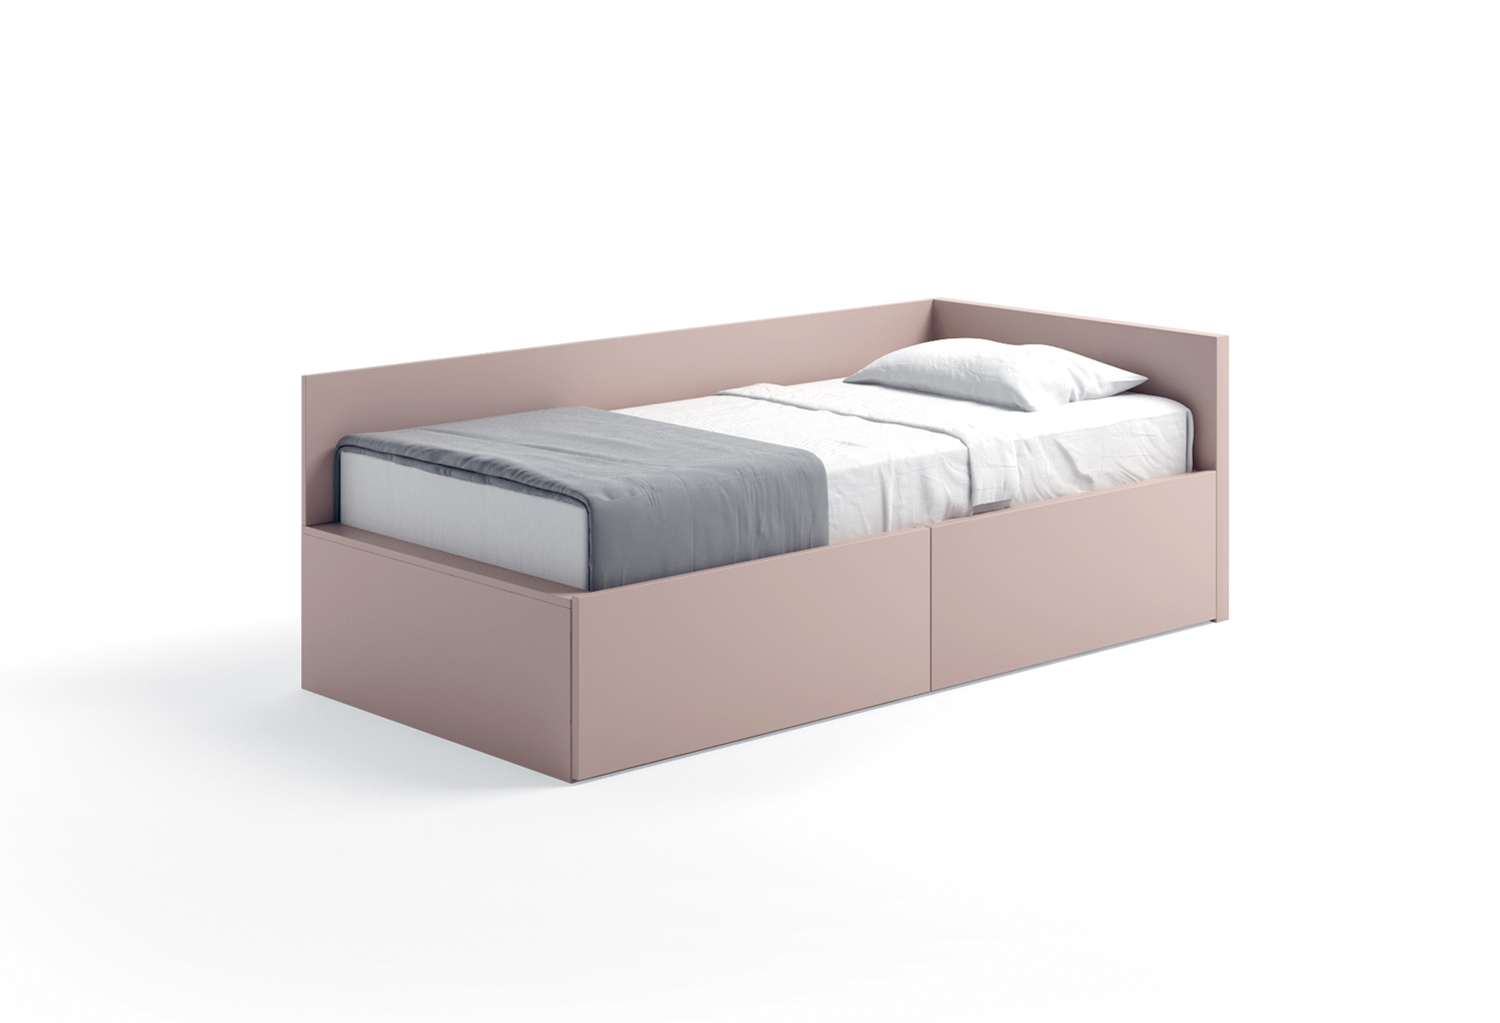 Cabin bed with headboard and back panel